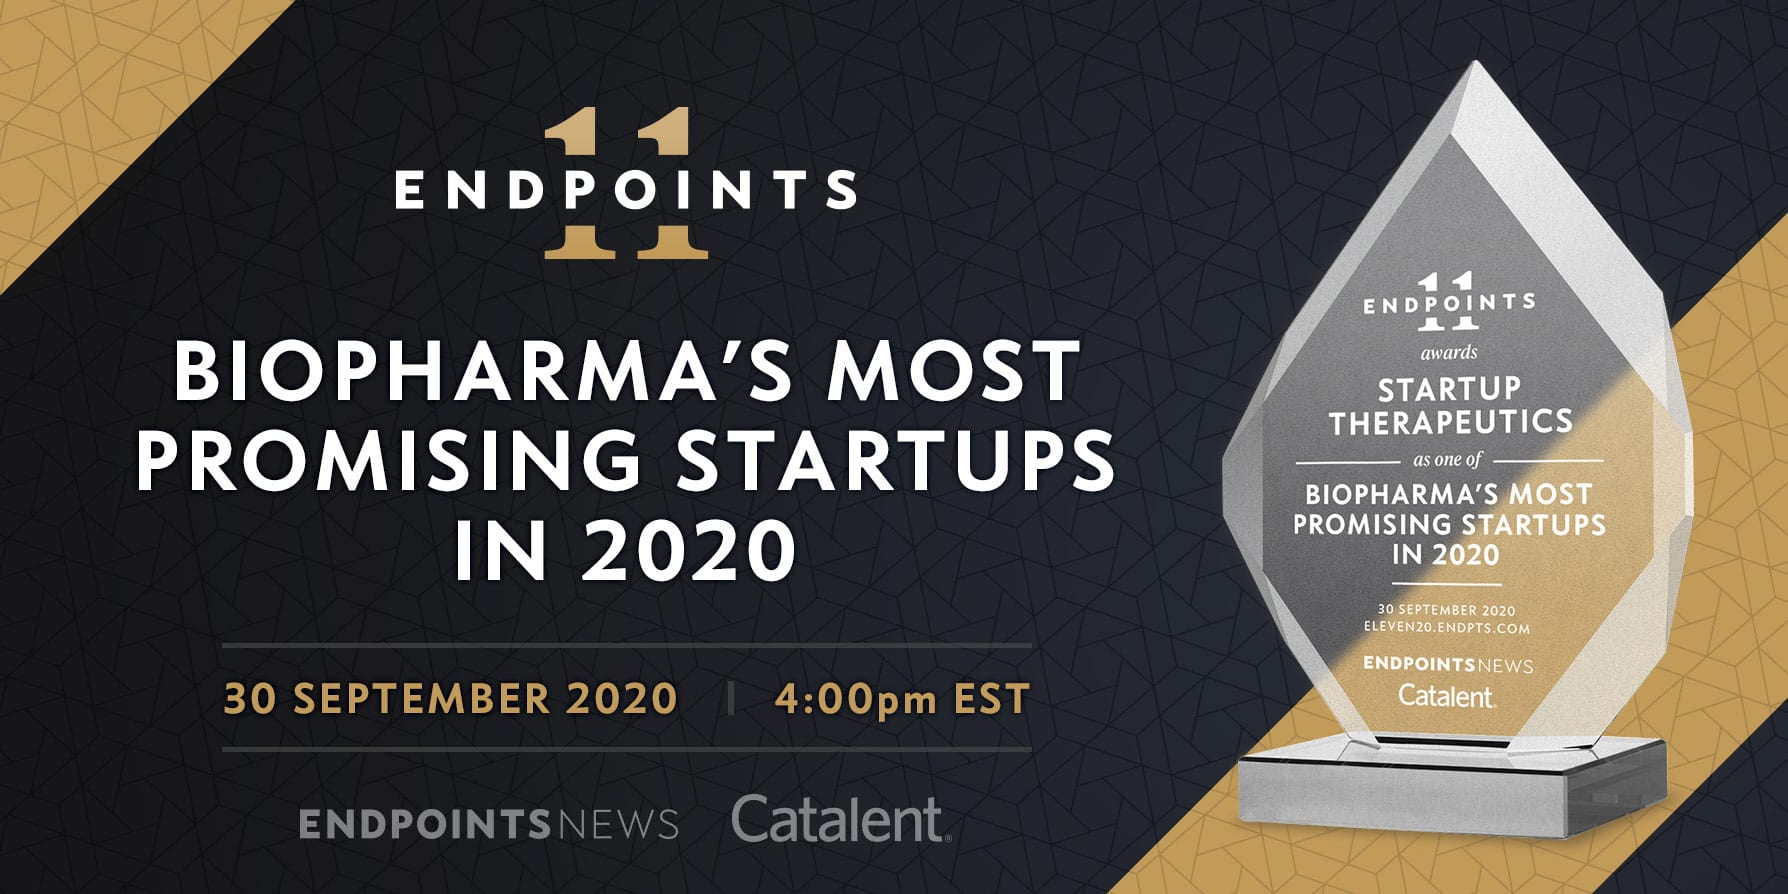 The Endpoints 11 celebrates biopharma's most promising startups. Live event on September 30